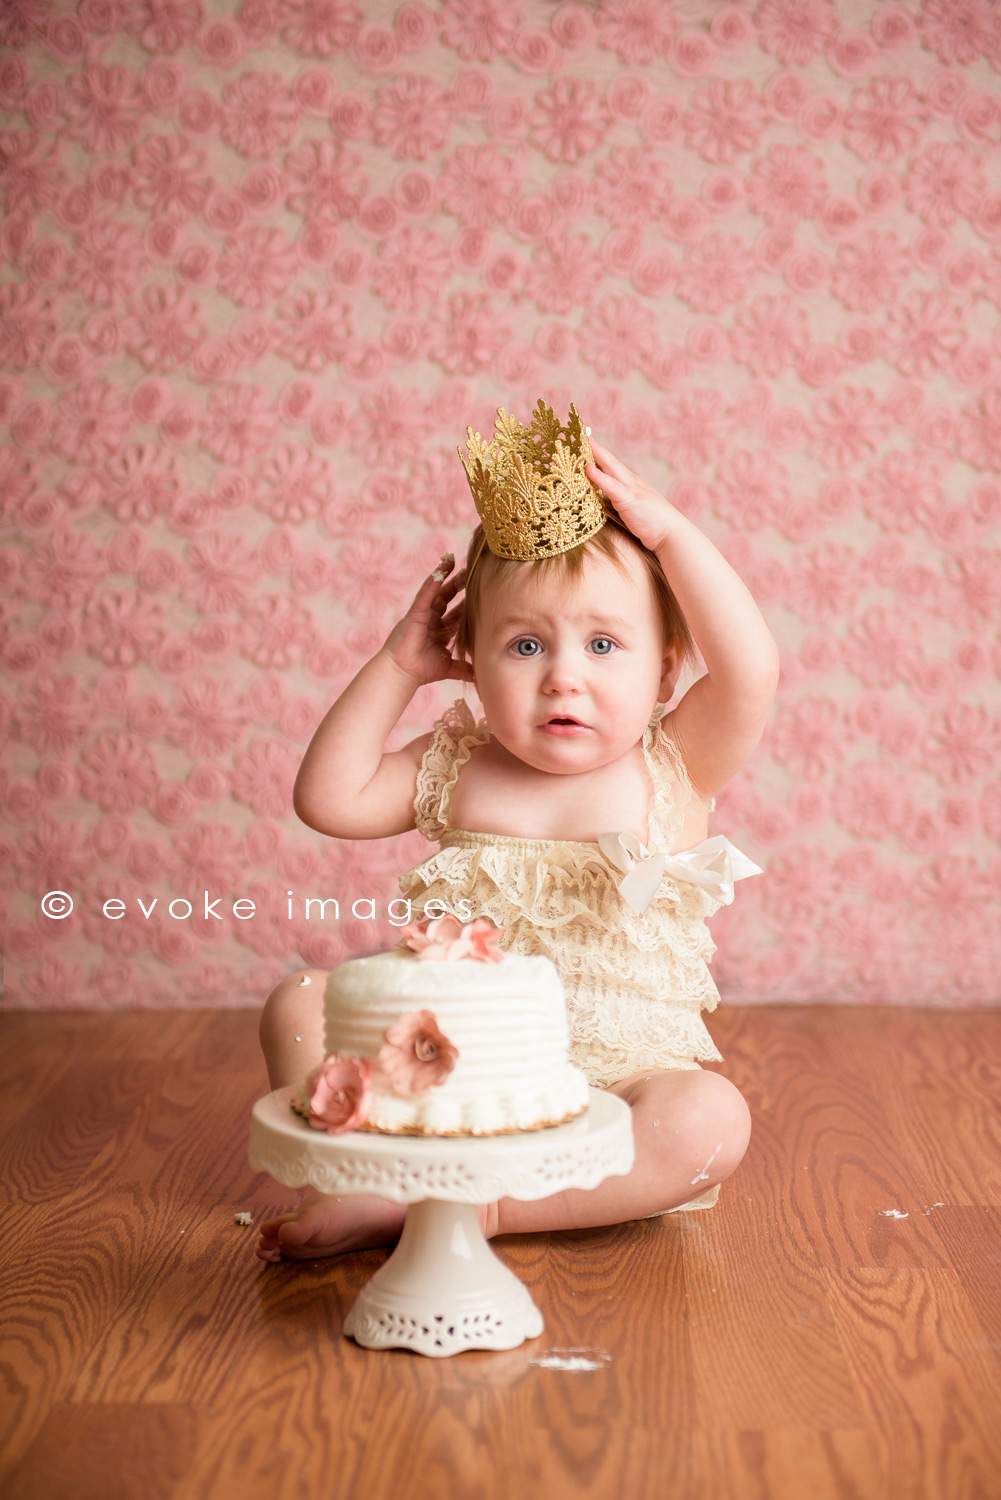 anchorage Alaska love crush crown cake smash little girl princess pink